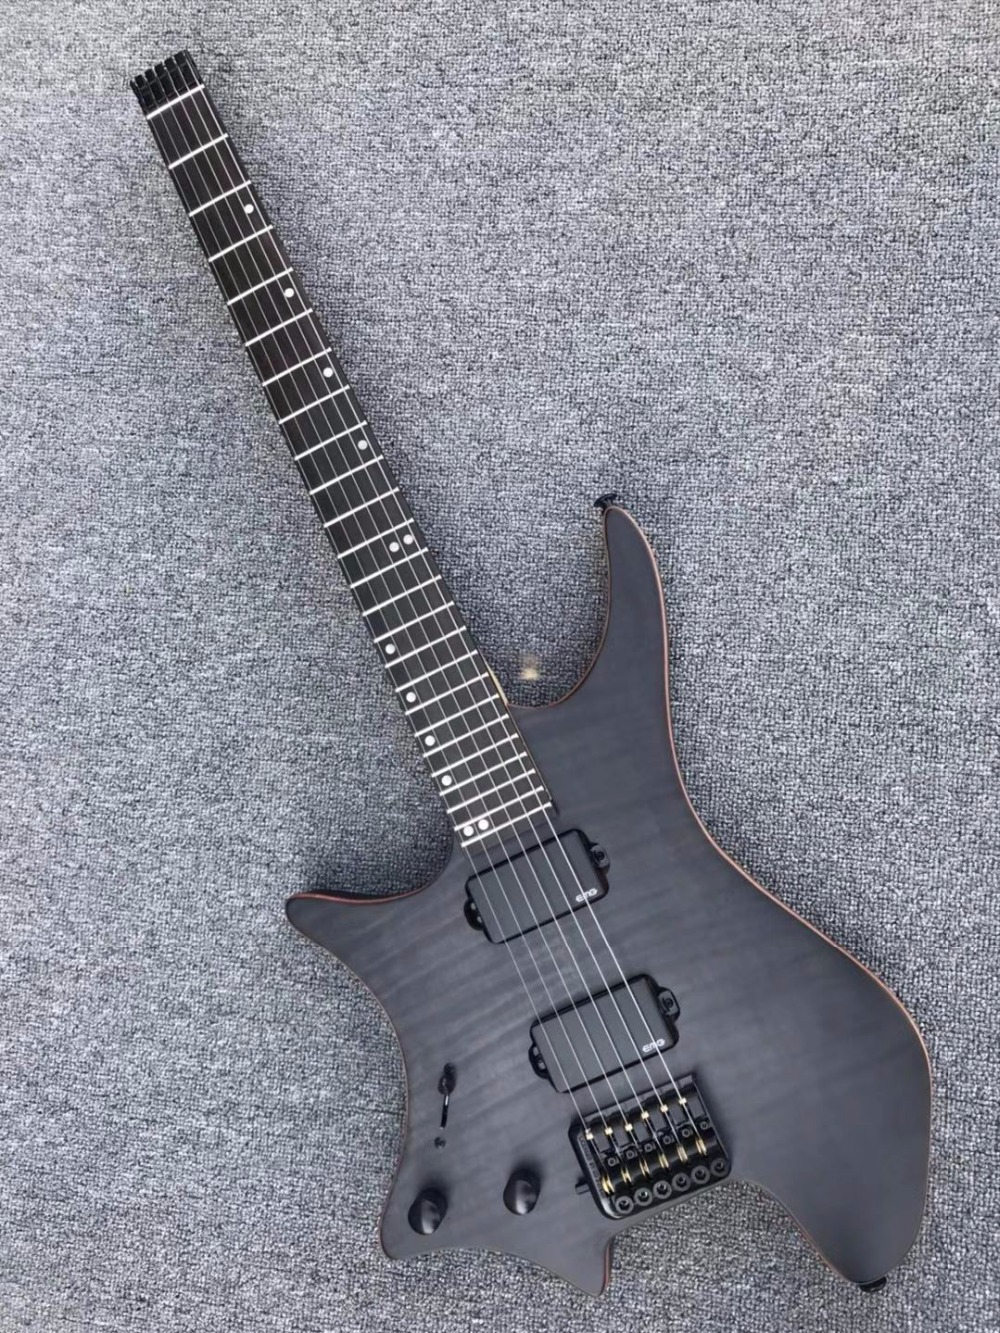 все цены на Wholesale New Left Handed Headless Guitar Electric Guitar In Grey Black 180321 other color is available